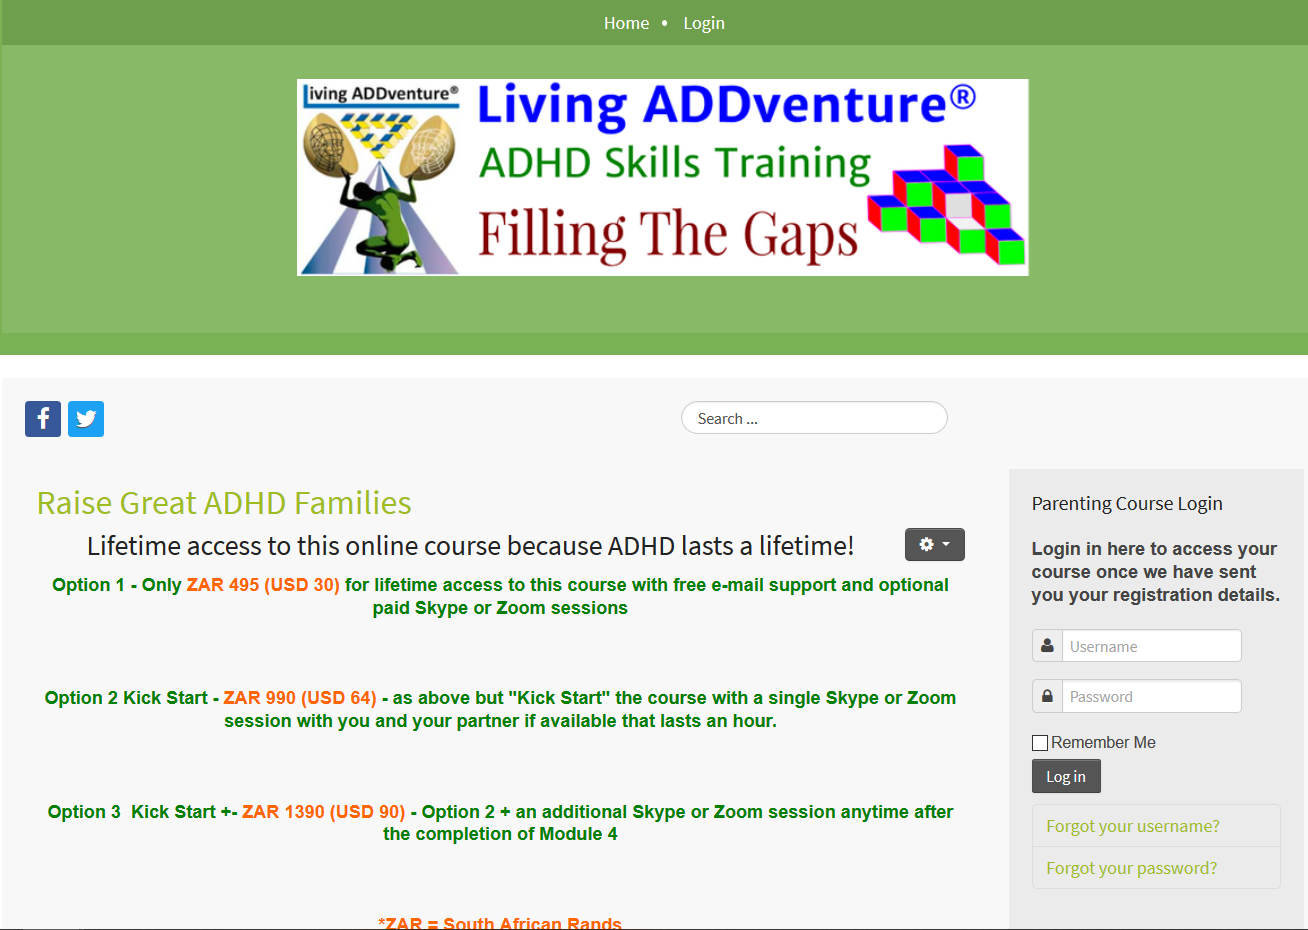 Living ADDventure Training